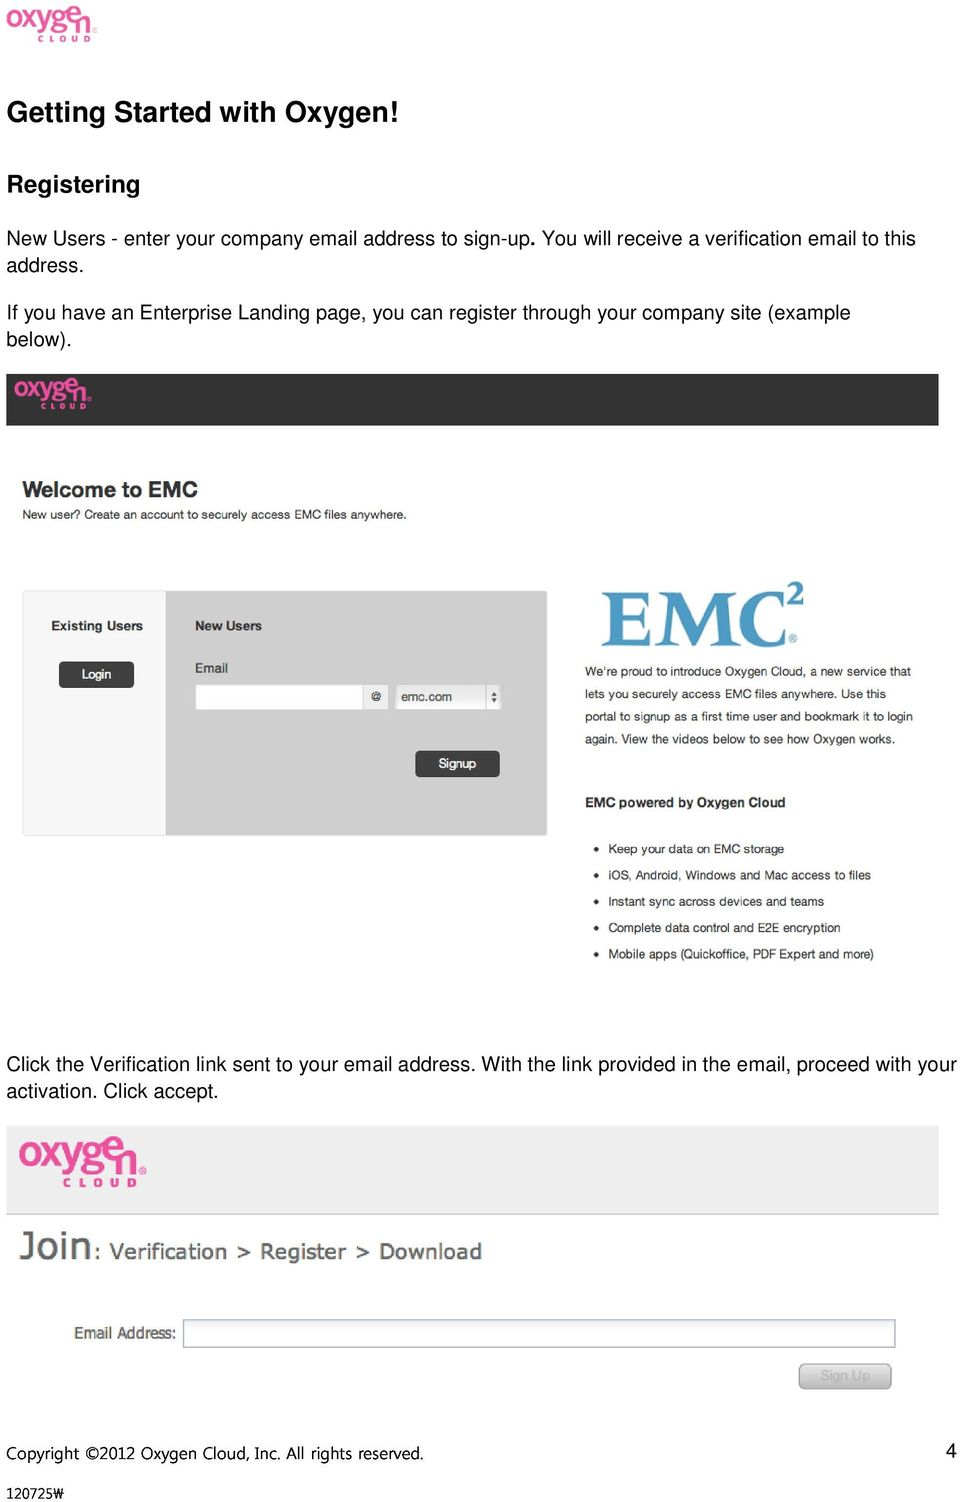 If you have an Enterprise Landing page, you can register through your company site (example